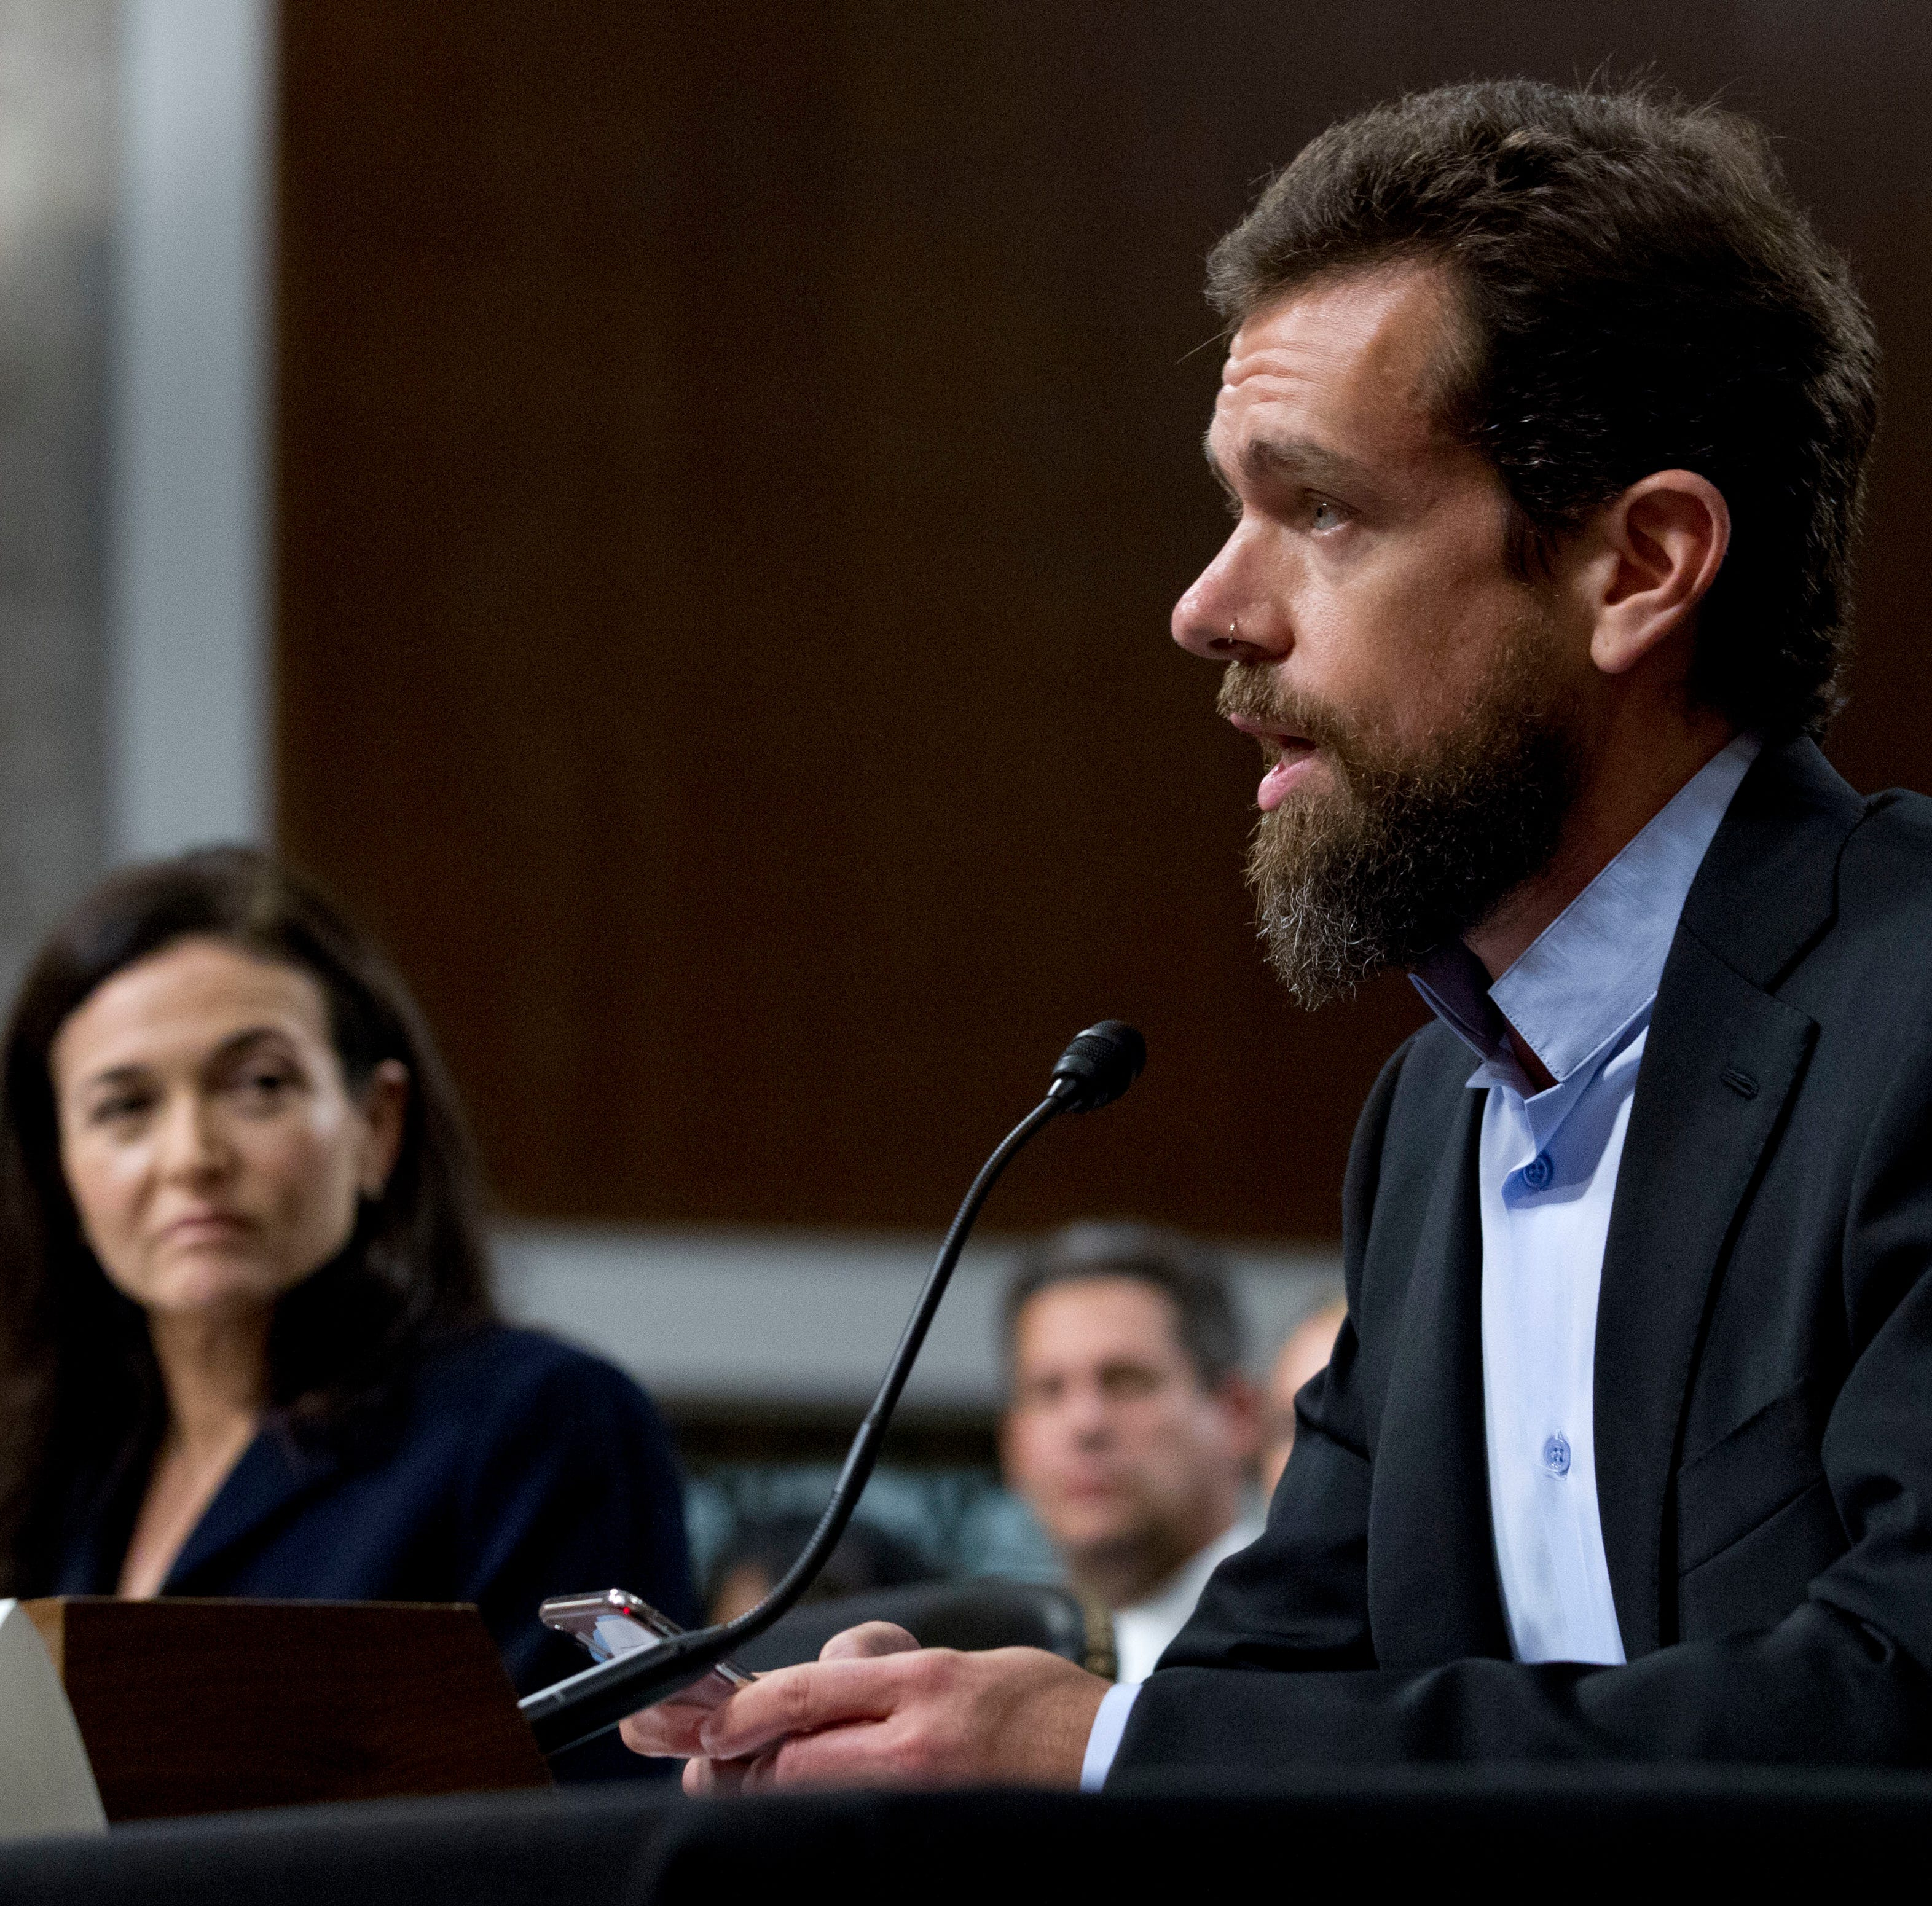 Twitter's Jack Dorsey continues testimony on Capitol Hill